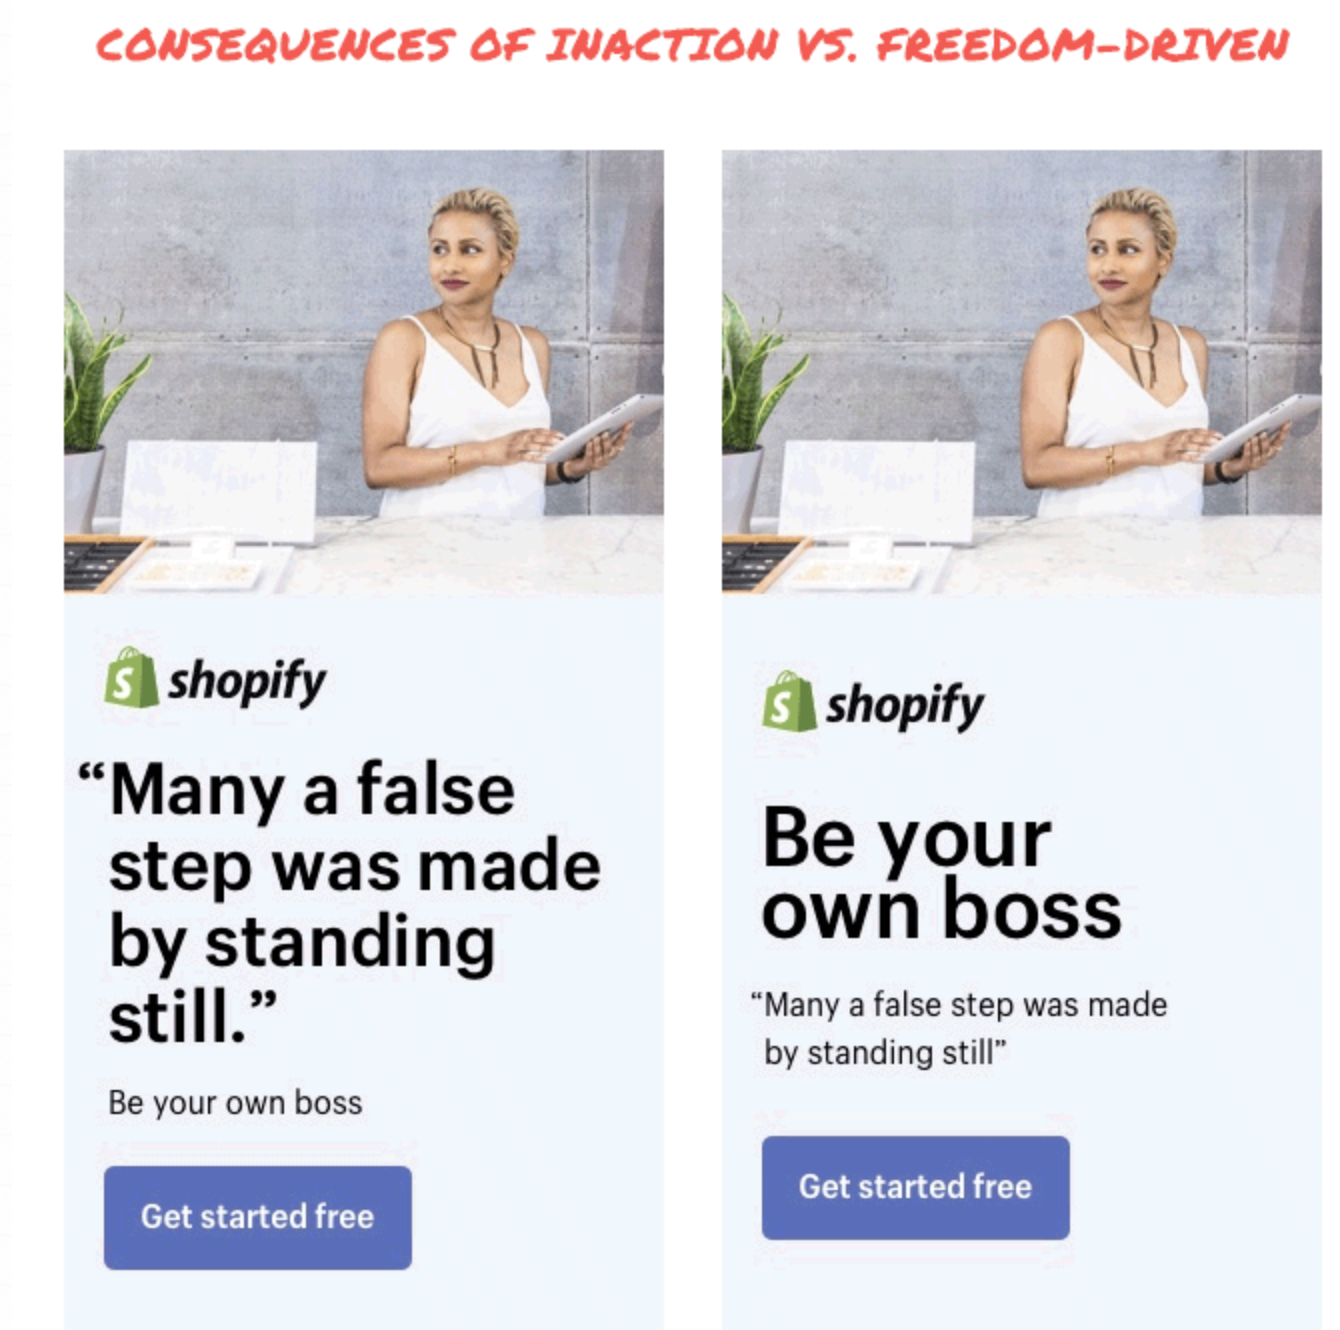 great copywriting example of a simple A/B Test